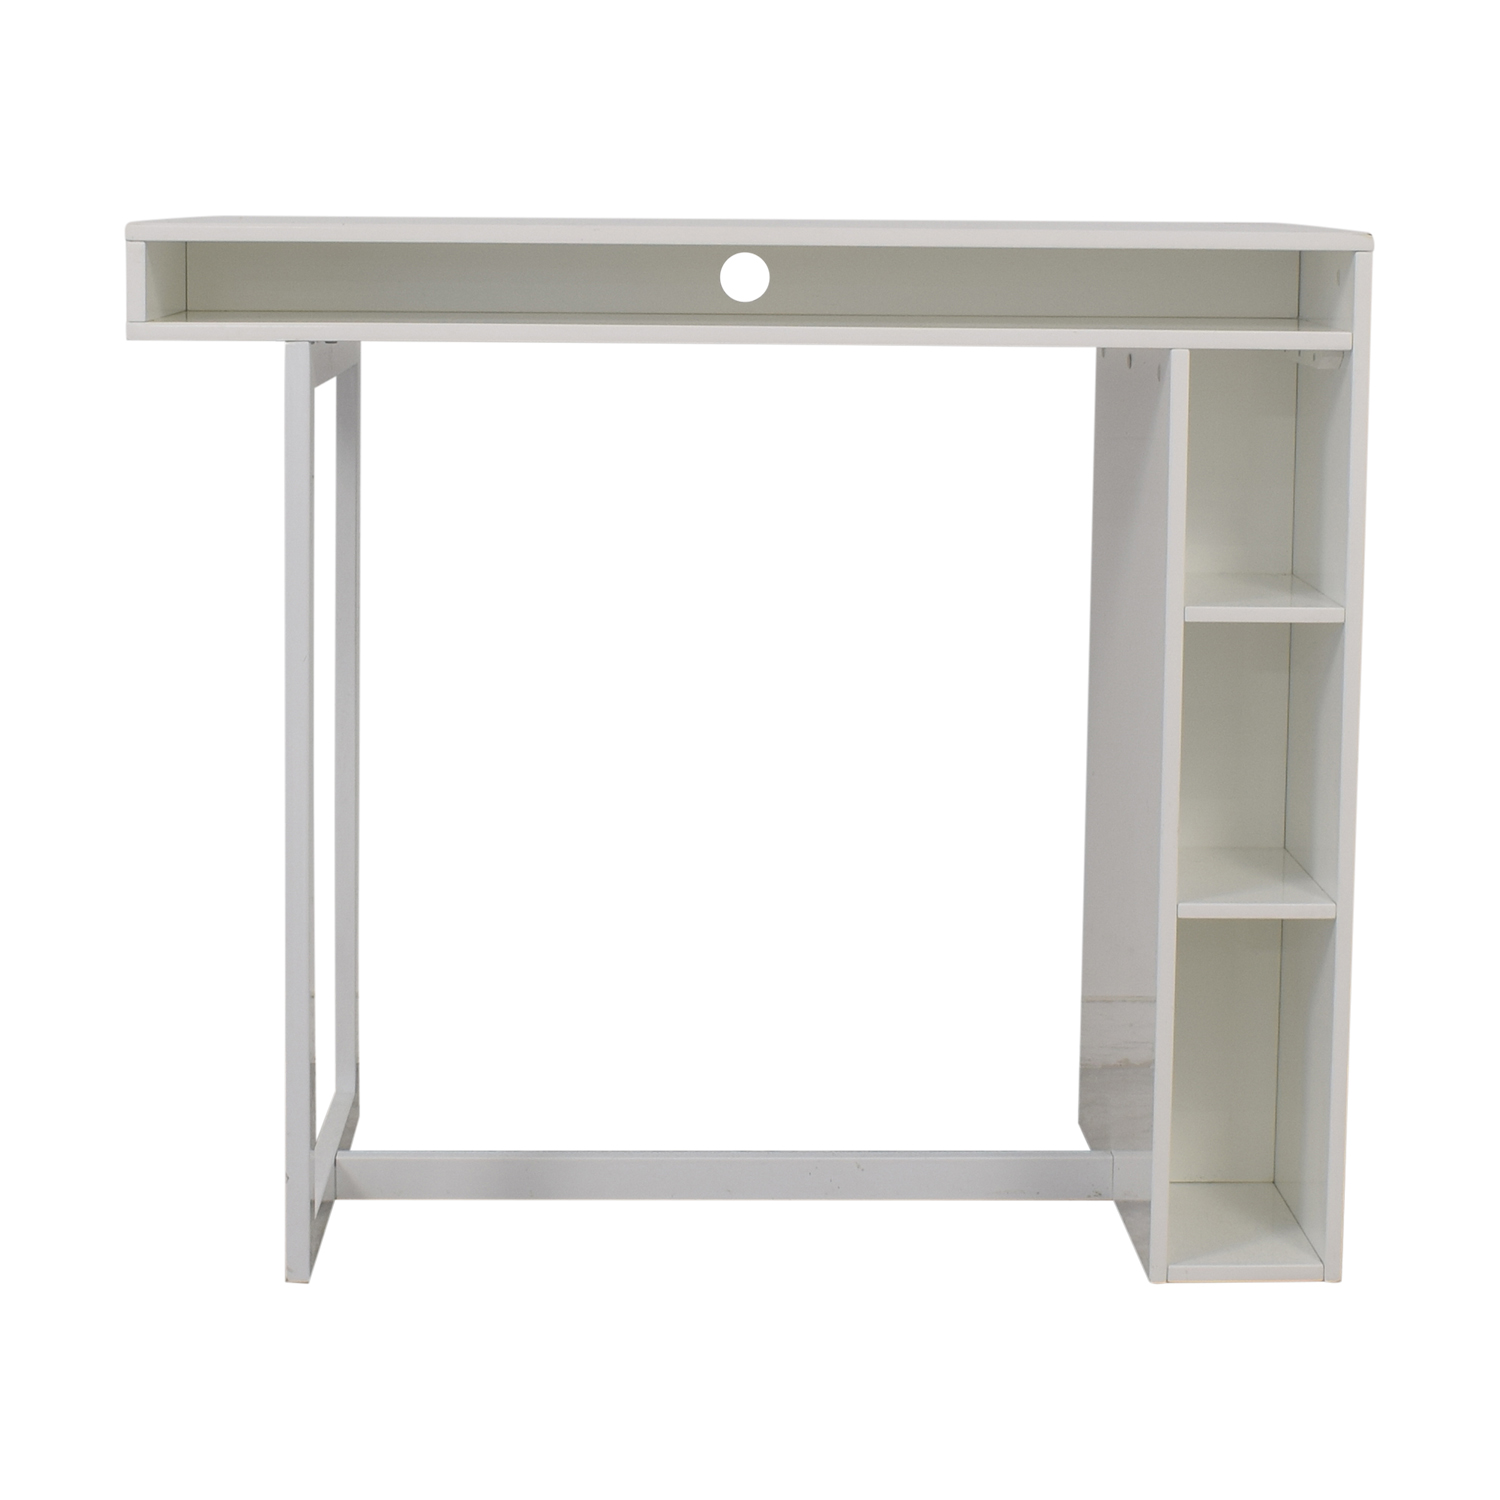 CB2 CB2 Public White Counter Dining Table on sale